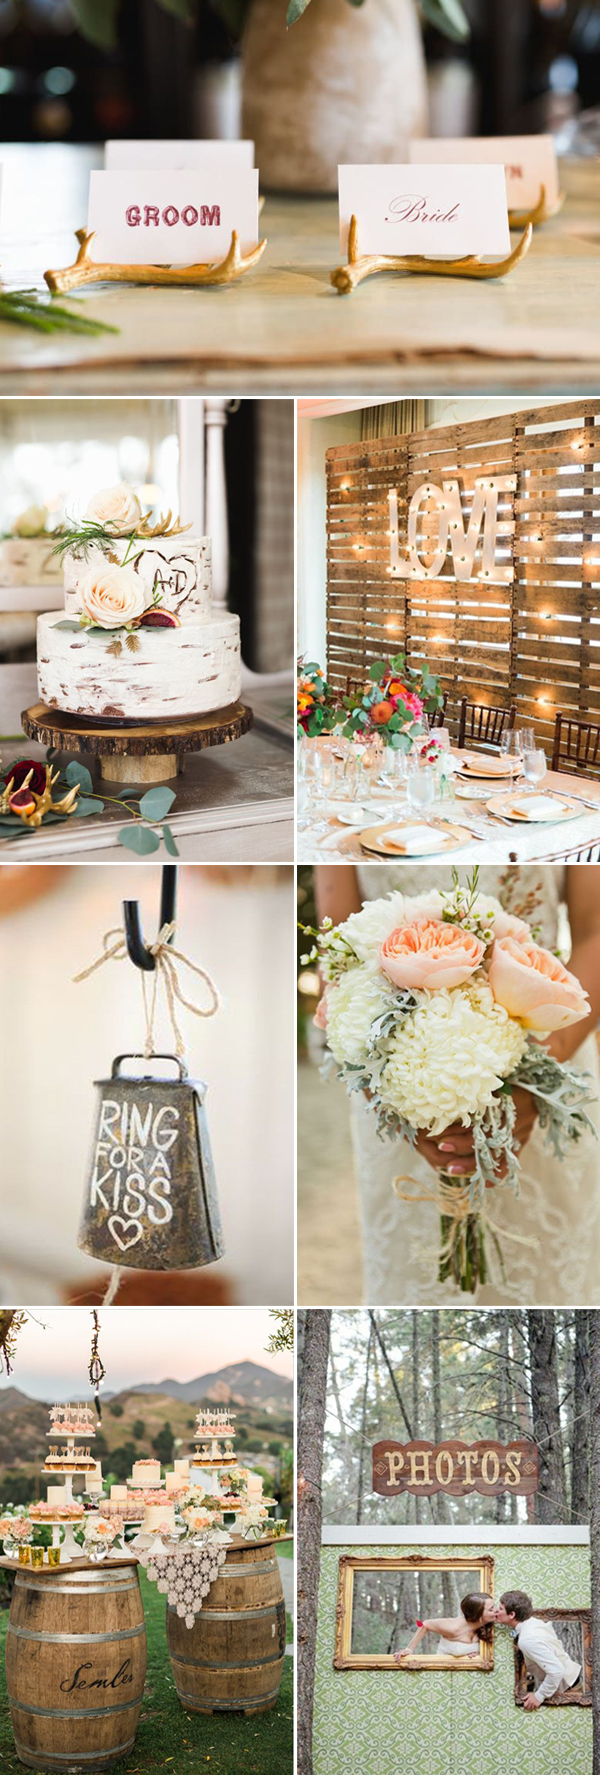 chic rustic wedding themes ideas for 2017